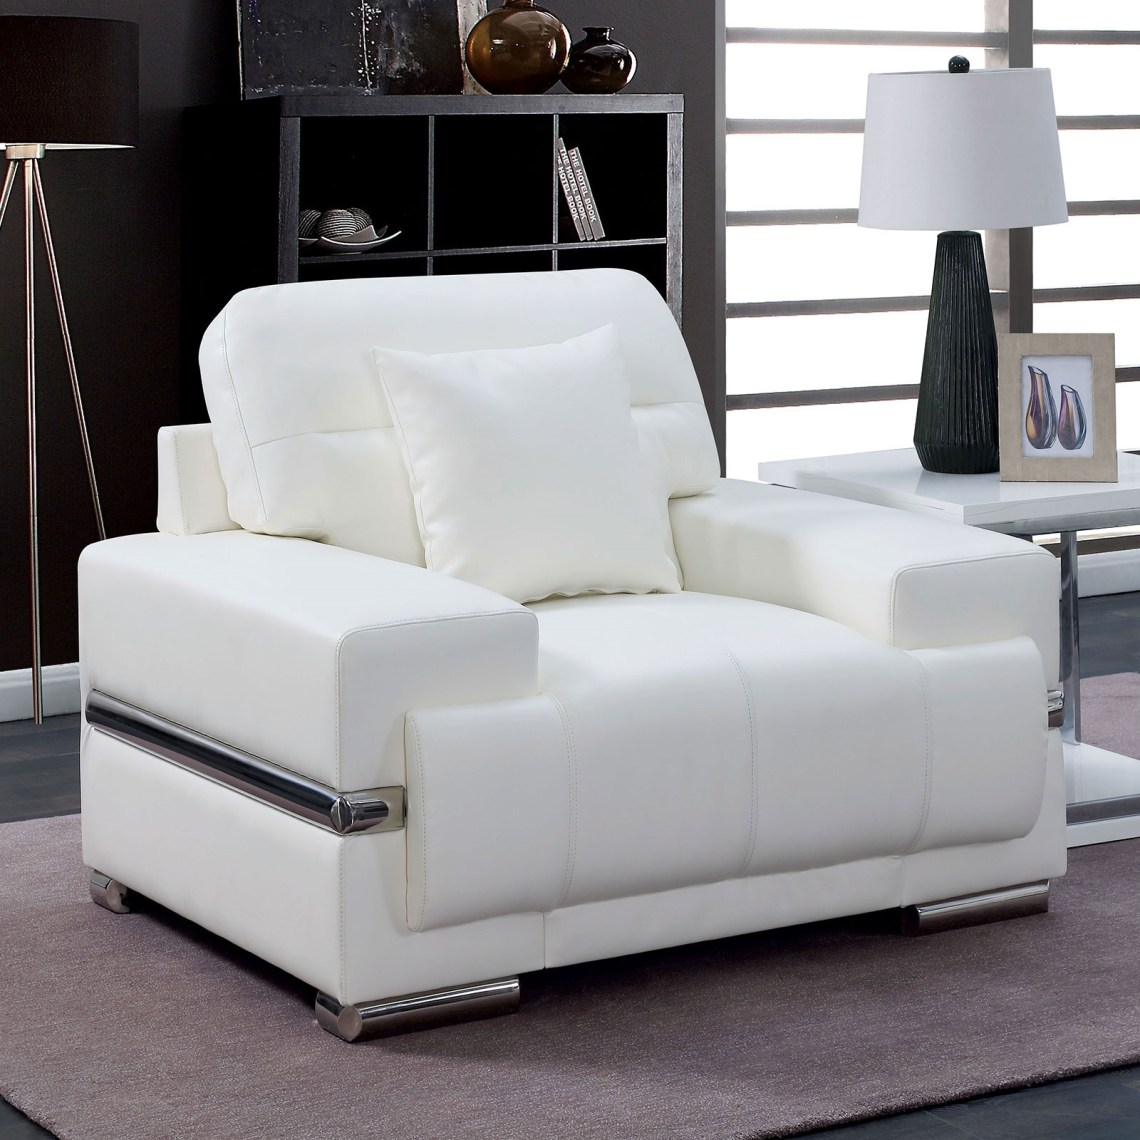 Zibak Ultra Modern Bright White Leather Chair With Chrome Accents Feet